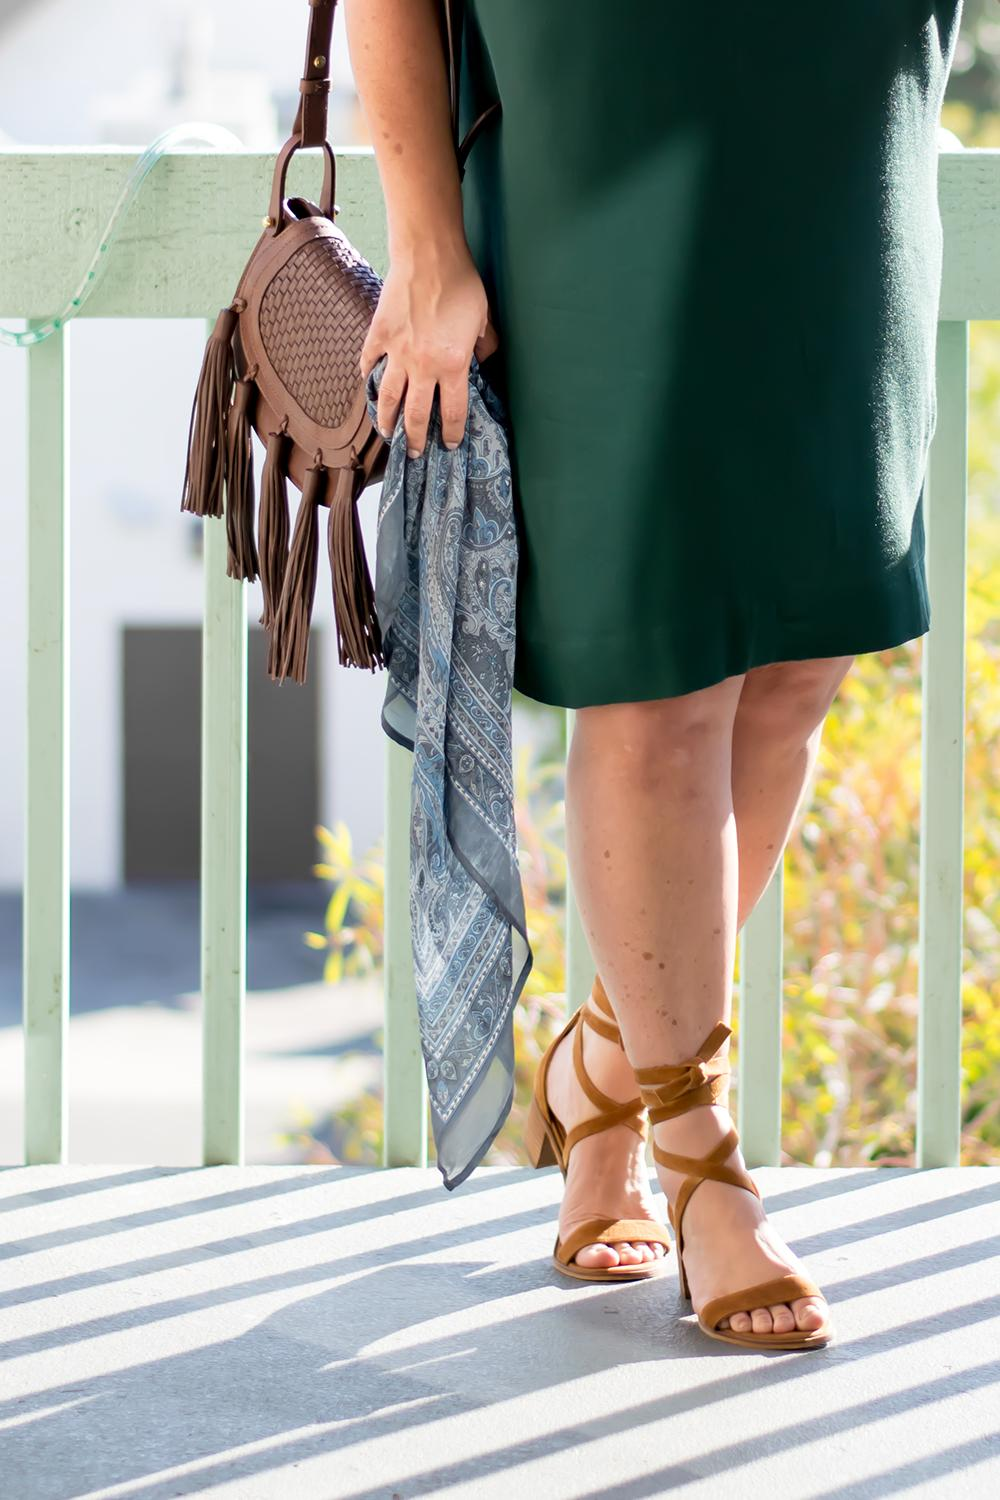 Madewell-Green-Novel-Dress-Outfit-Street-Style-Looks-to-Copy-in-2017-Barefoot-in-LA-Fashion-Blog-Style-Ideas-DSC_0873